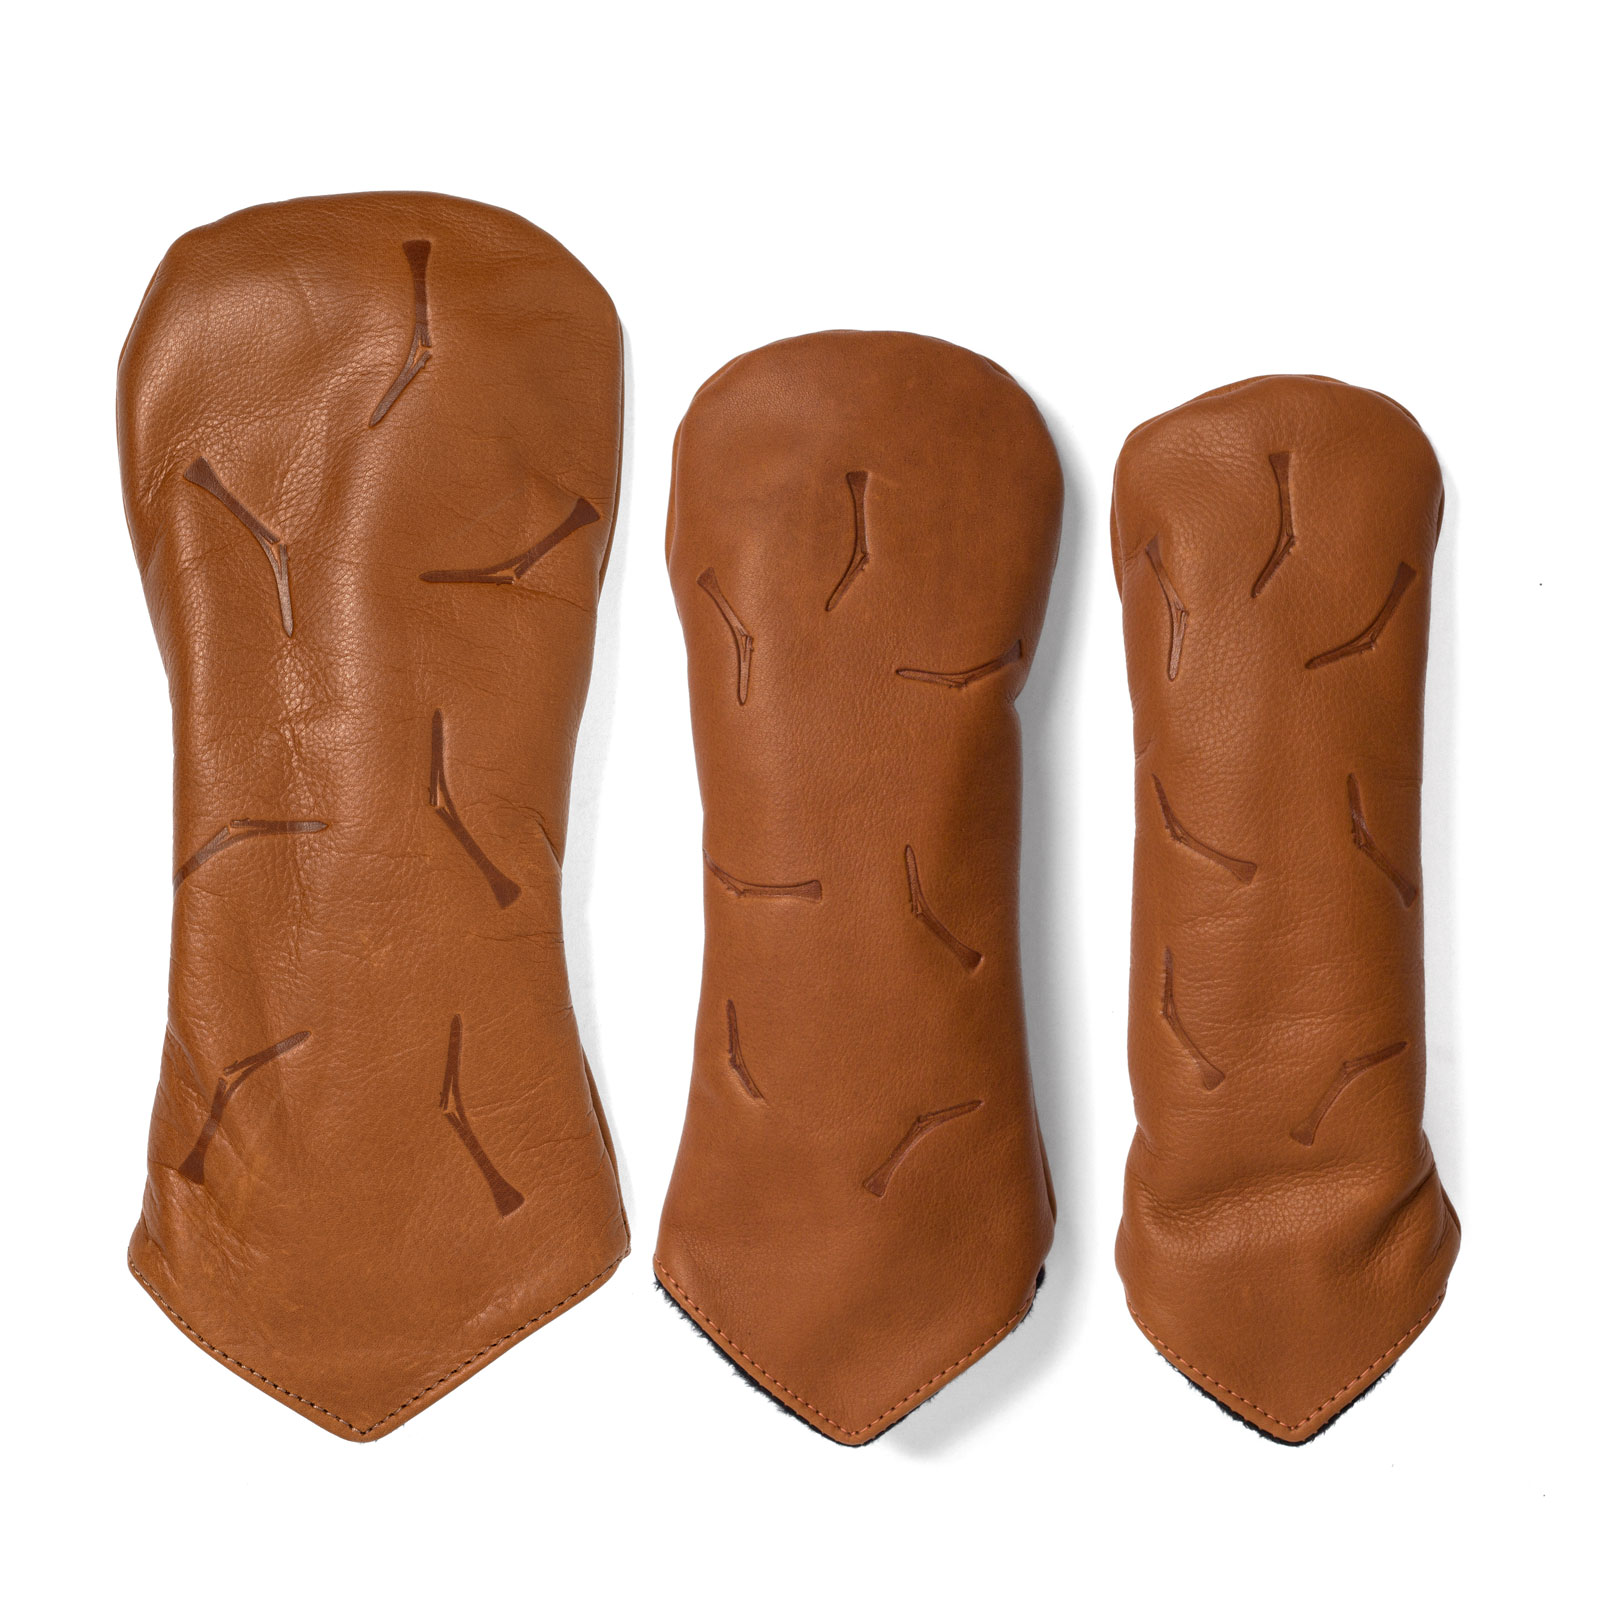 TGJ x Links & Kings Broken Tee Leather Headcovers - Tan